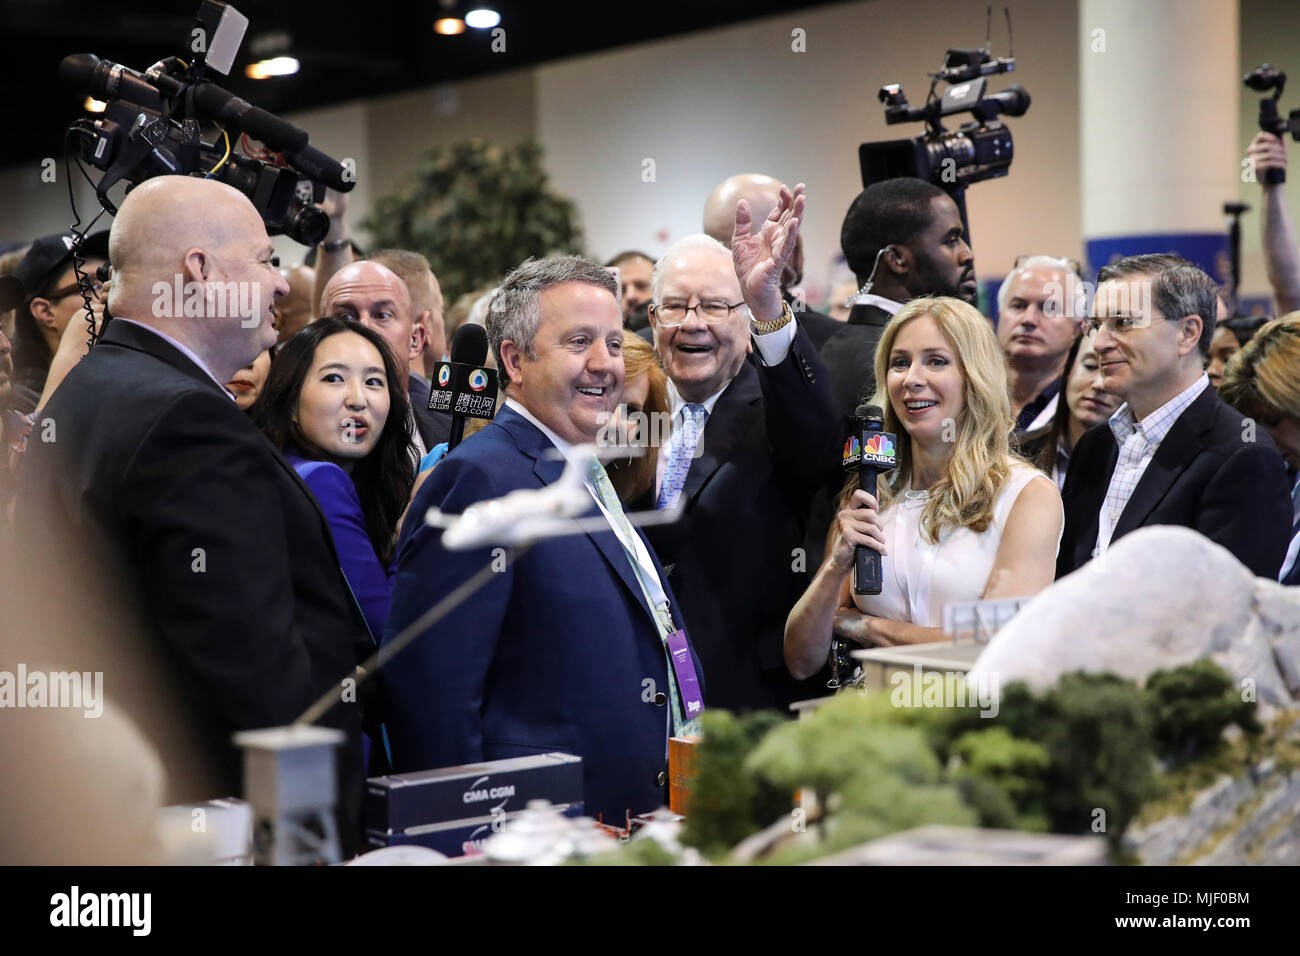 Omaha, USA. 5th May, 2018. U.S. billionaire investor Warren Buffett (C), chairman and CEO of Berkshire Hathaway, greets people as he visits an exhibition on his invested companies before the Berkshire Hathaway's annual shareholders meeting in Omaha, Nebraska, the United States, on May 5, 2018. Berkshire Hathaway held its 2018 shareholders meeting on Saturday, attended by tens of thousands of people from all over the world. Credit: Wang Ying/Xinhua/Alamy Live News - Stock Image